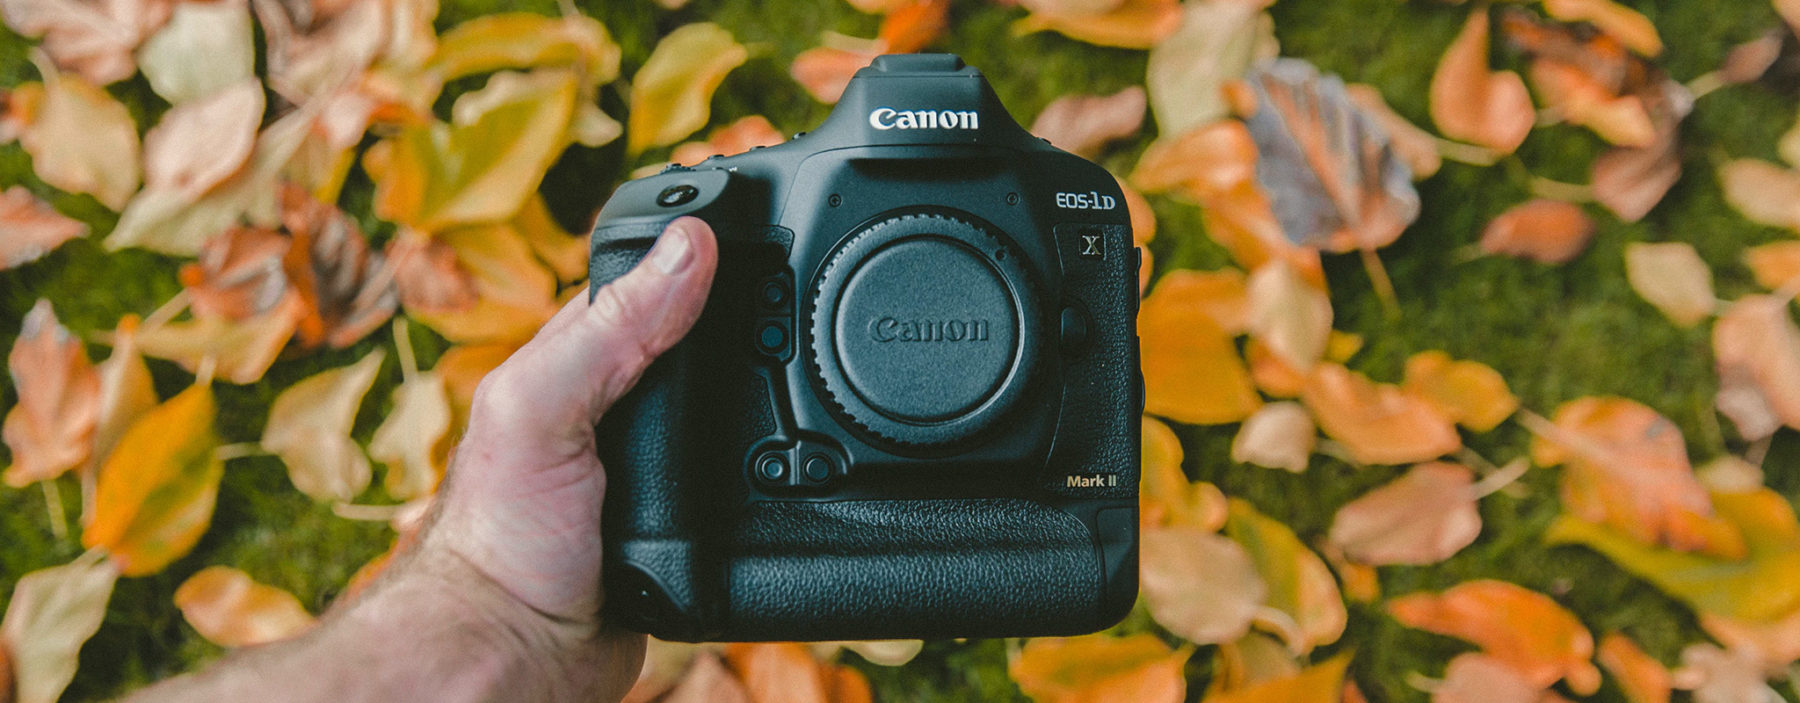 Camera held by hand